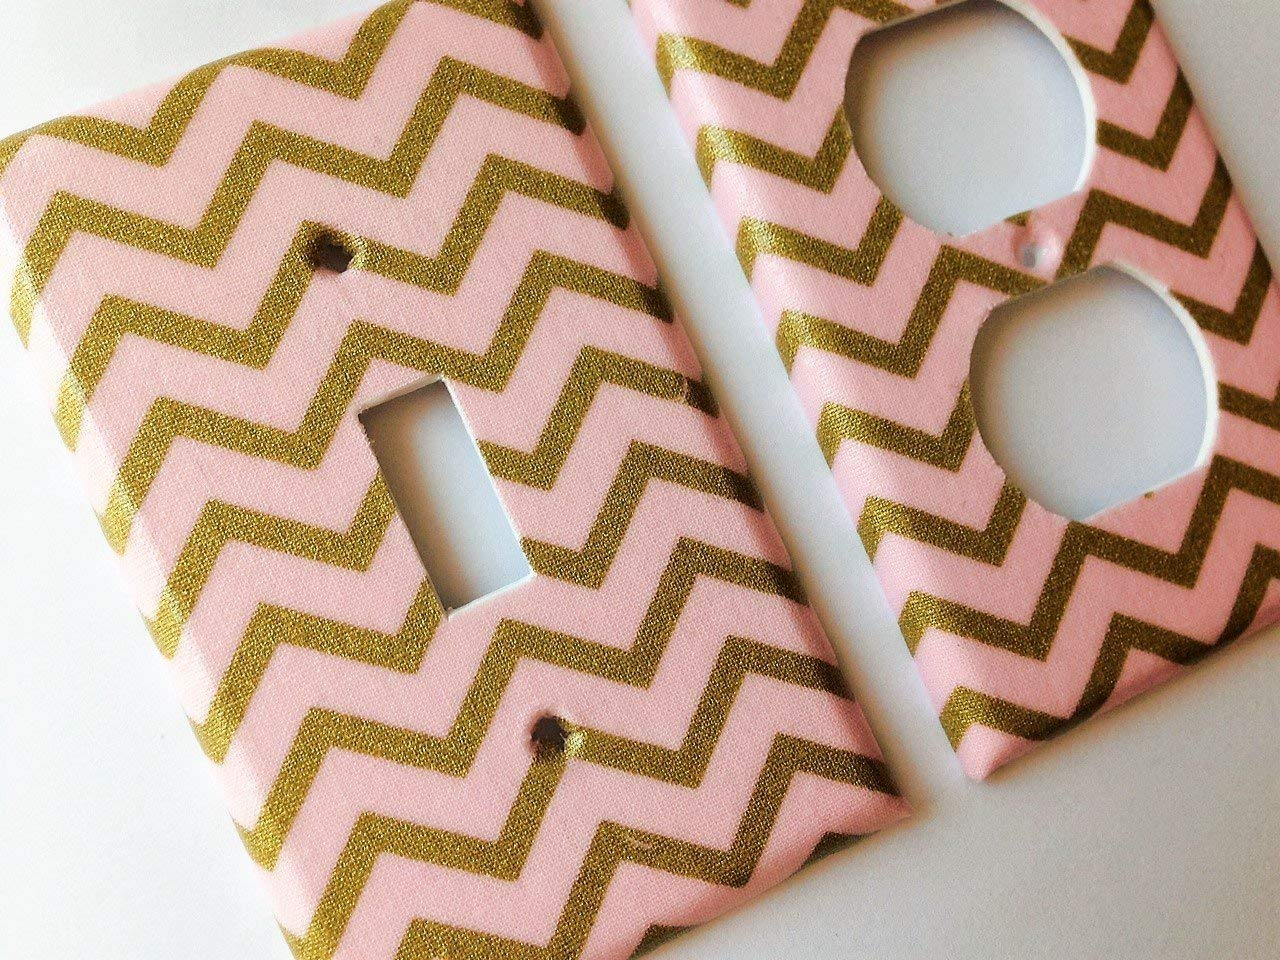 Metallic Gold San Diego Mall New item and Pink Light Offered Switch Cover Sizes Various